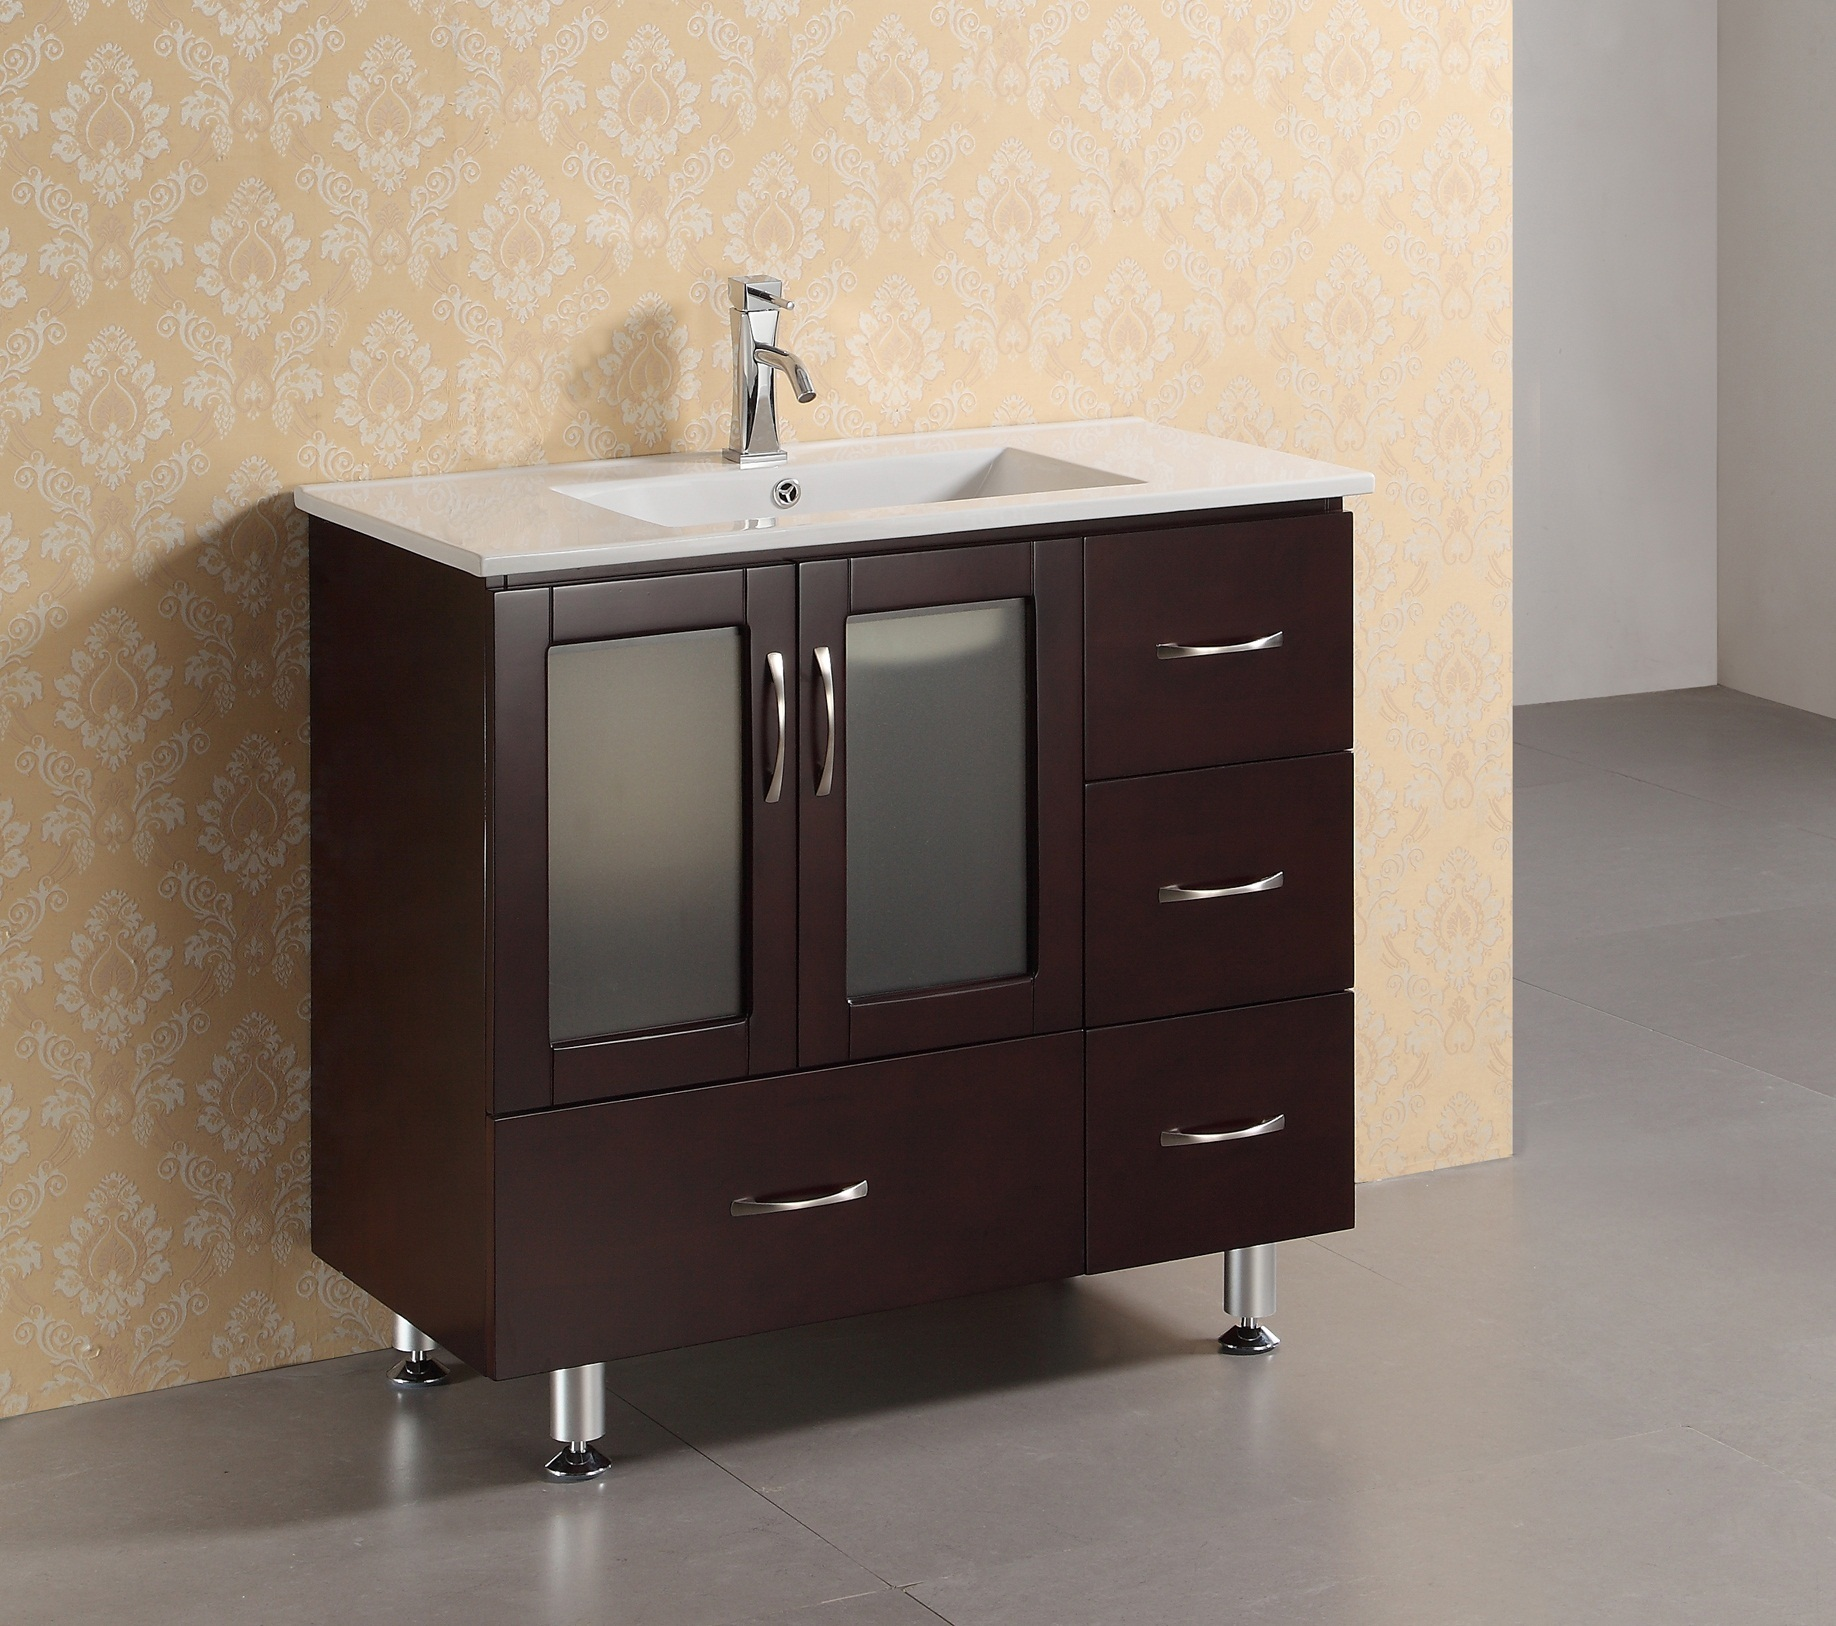 36 Inch Vanity 36 Inch Vanity Bathroom 36 Inch Vanity Combo Home Design Ideas And Inspiration